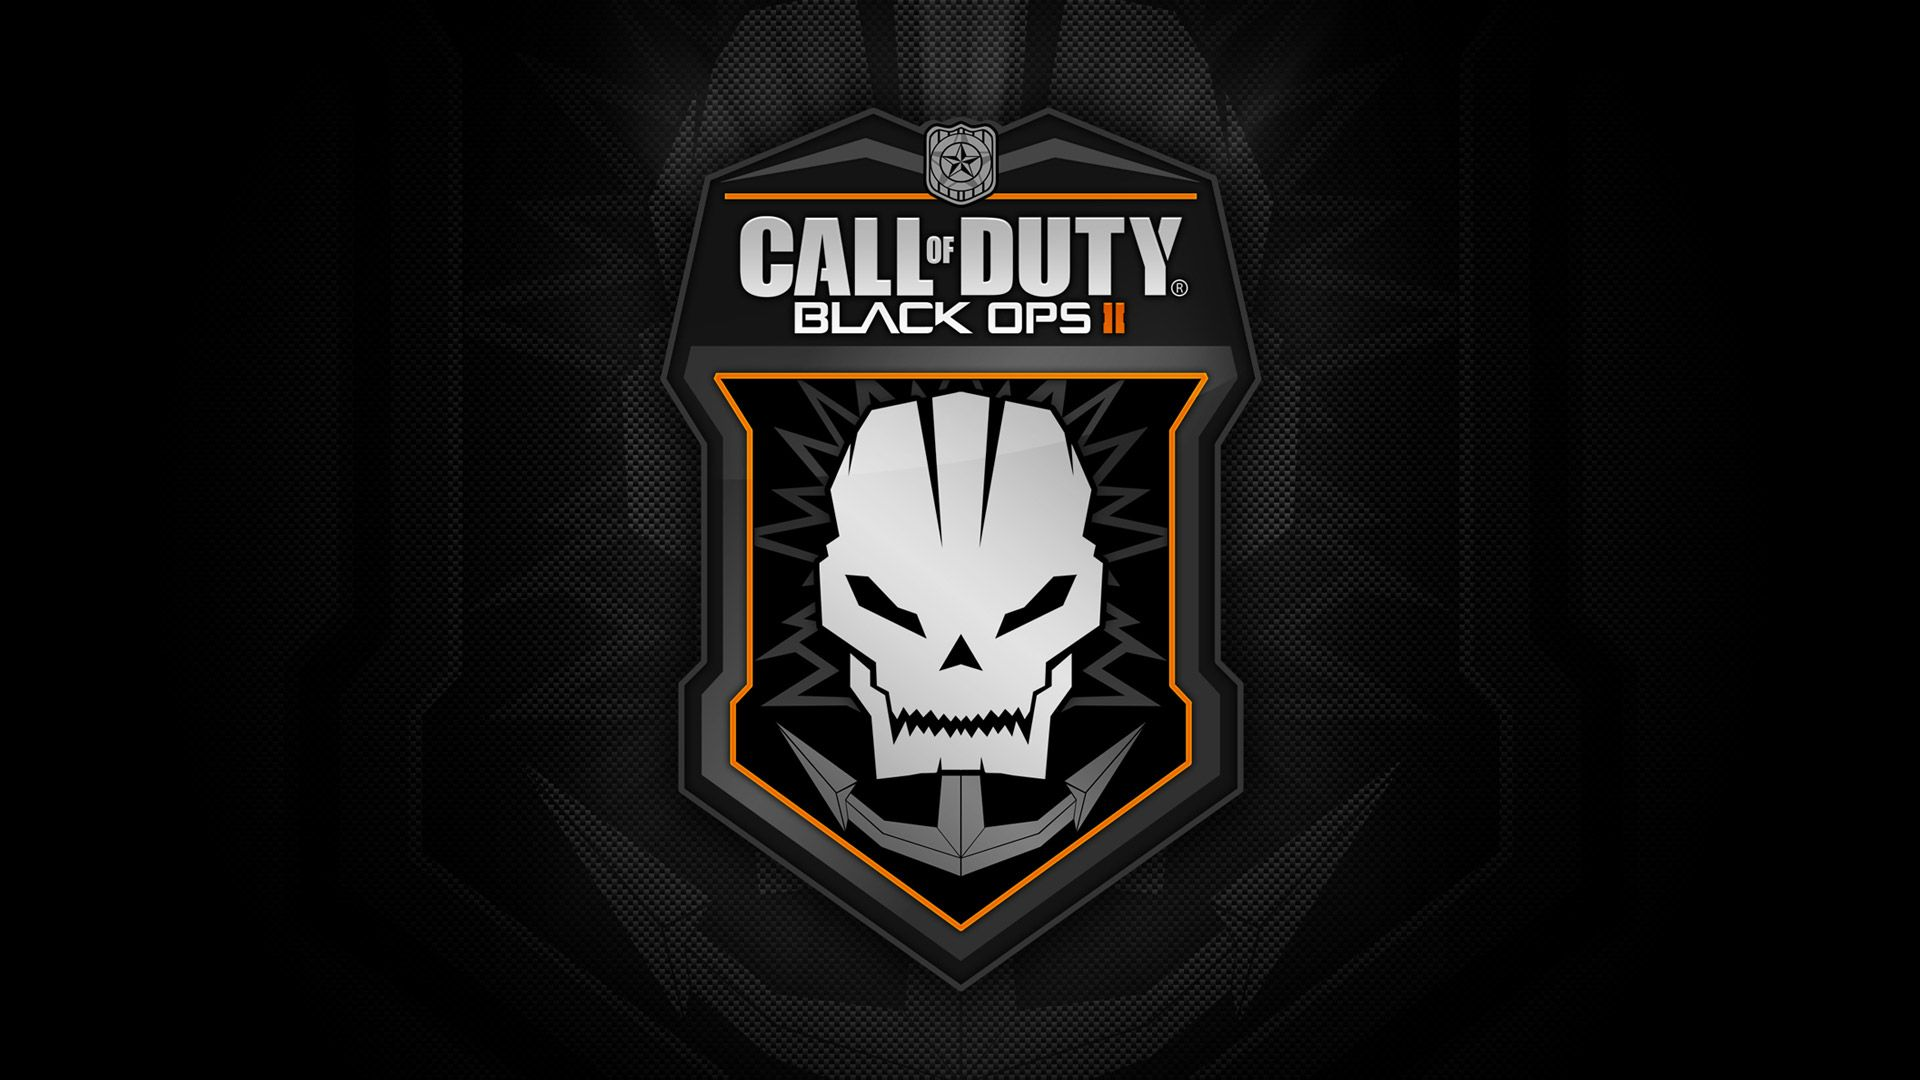 call of duty black ops 2 logo wallpaper wallpaper | wallpaperlepi